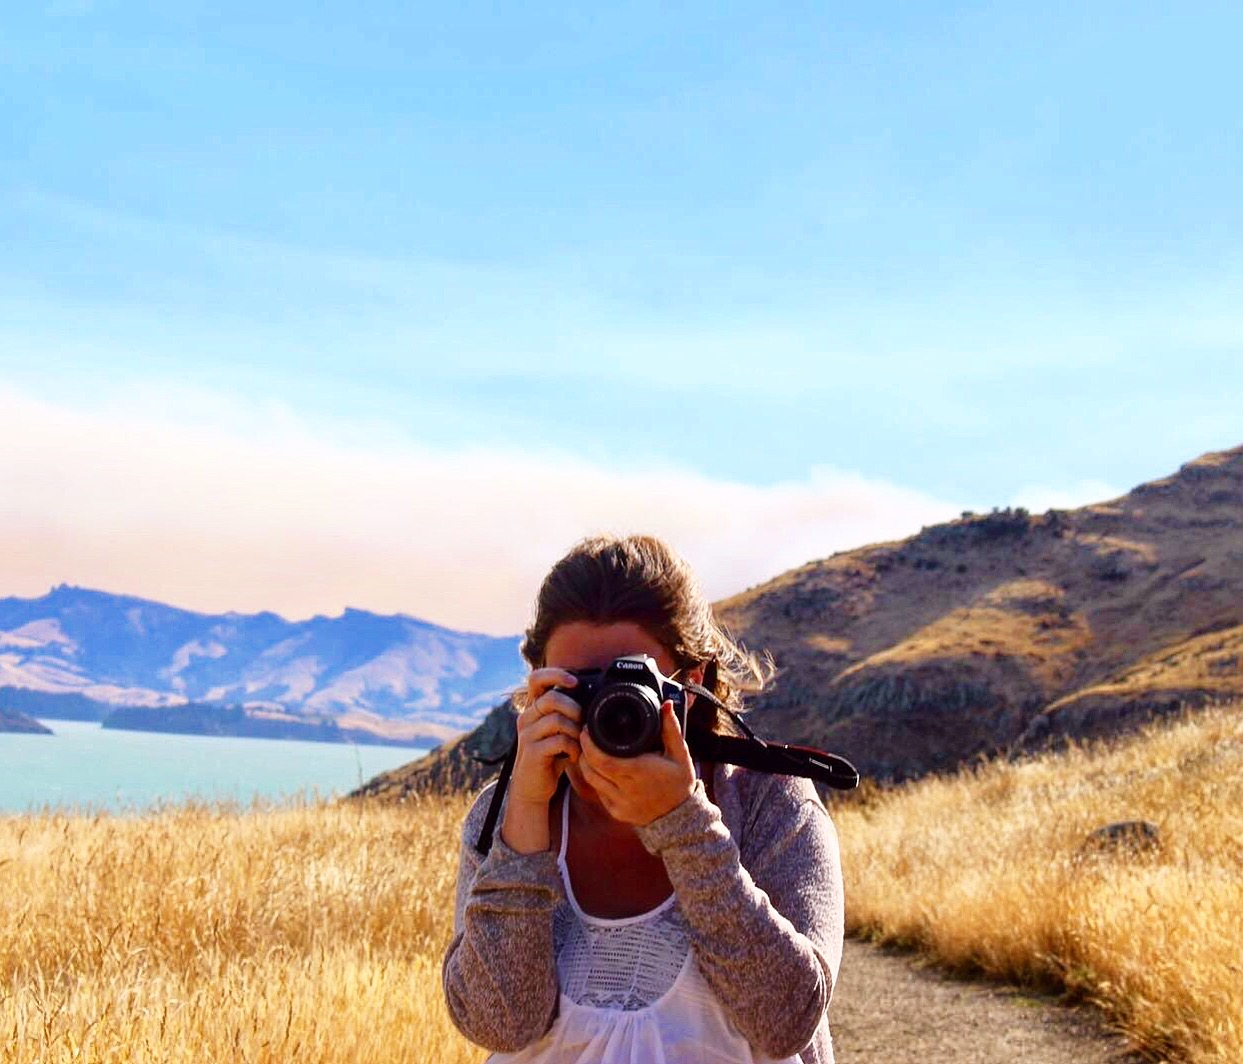 Girl pointing a camera at the photographer with colourful mountain scenery behind